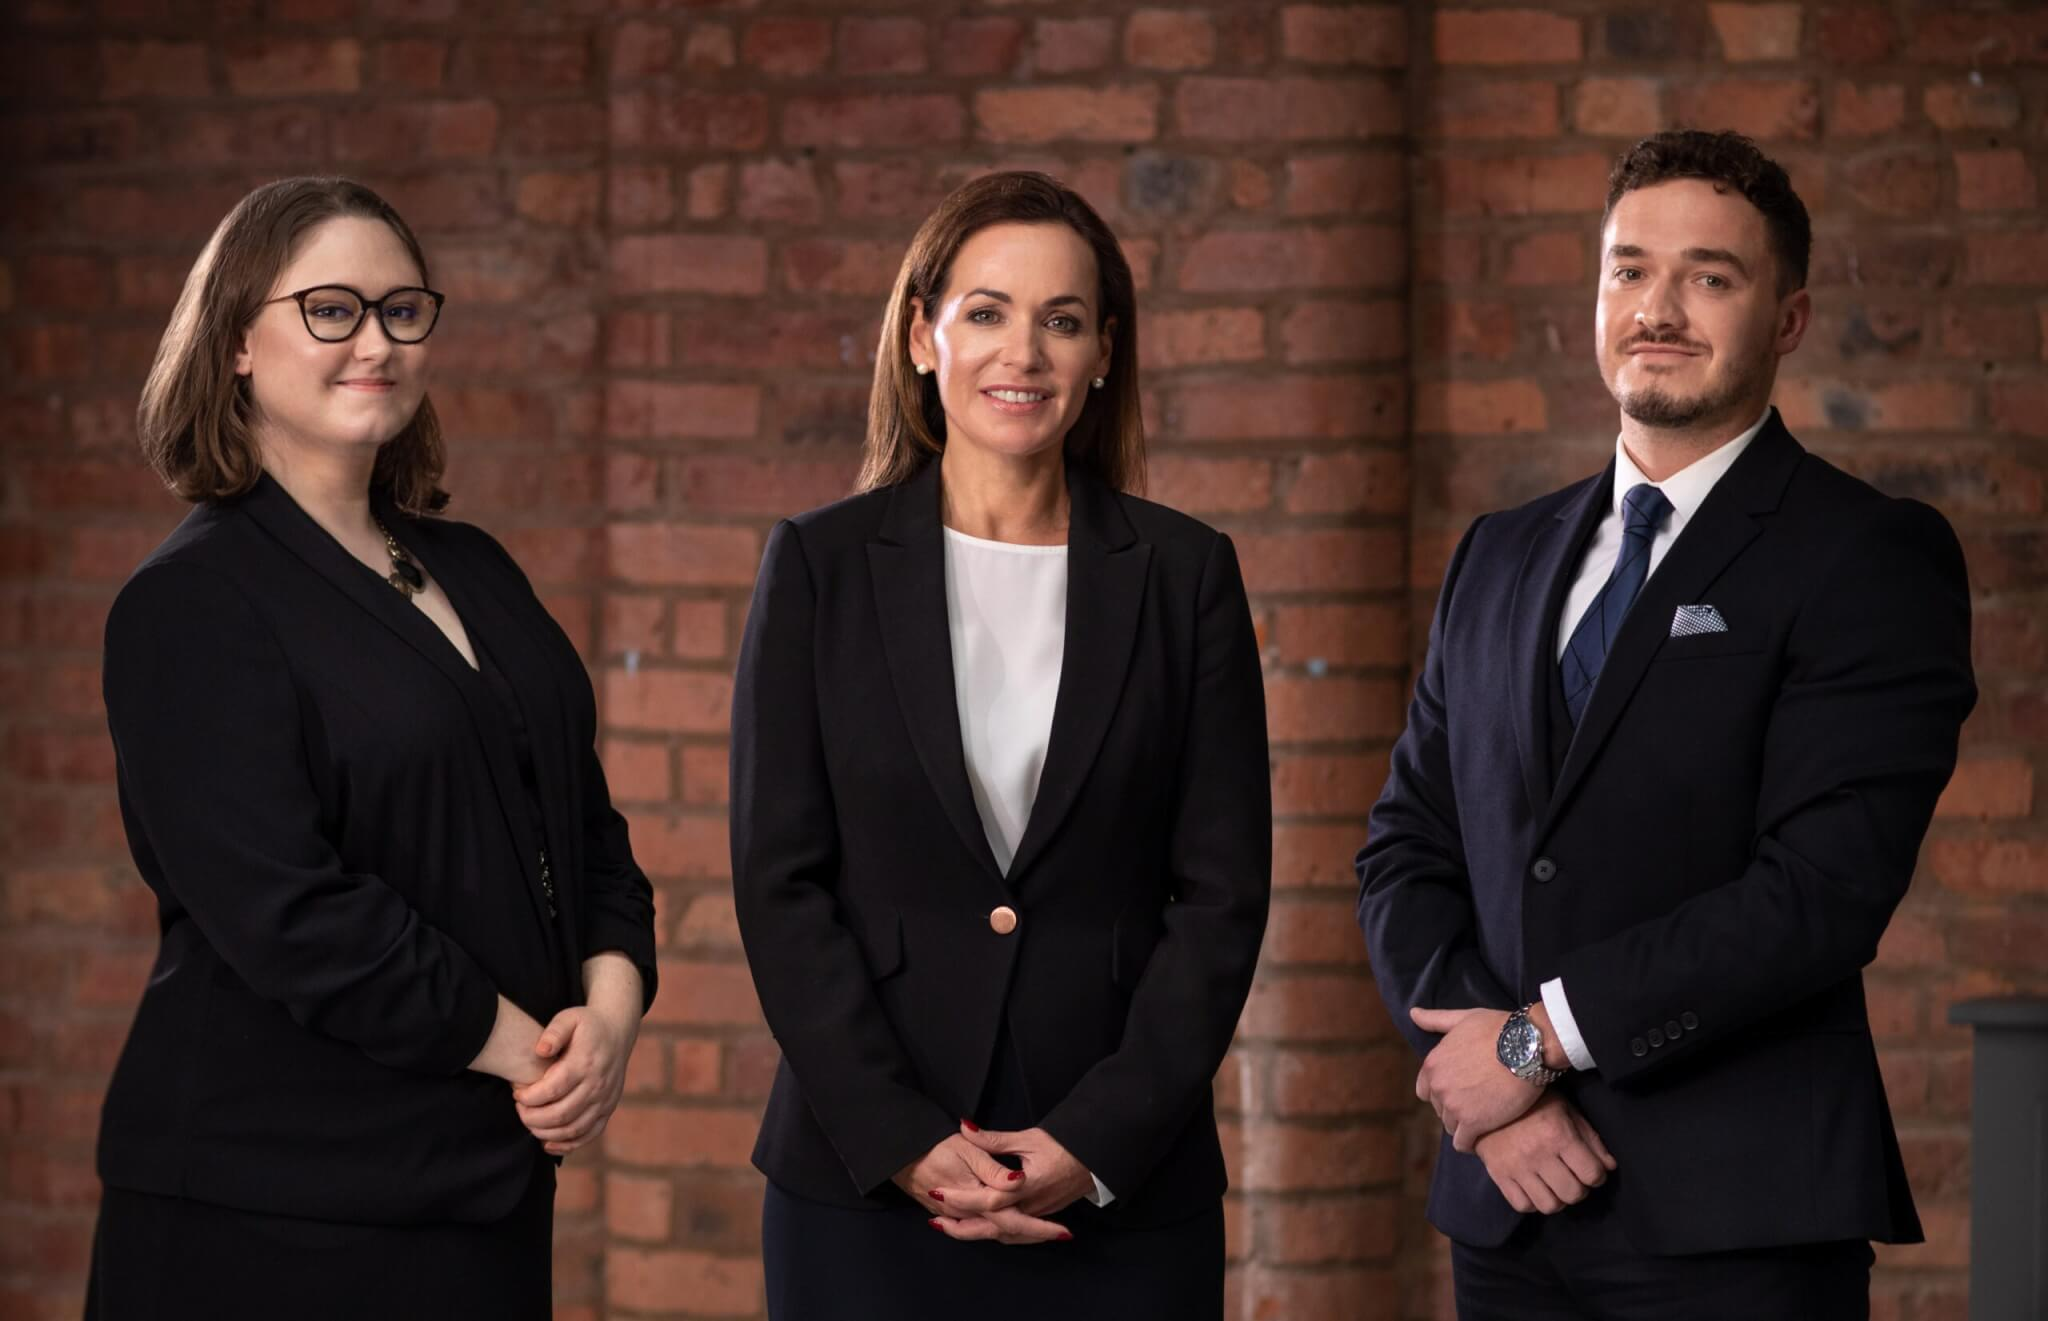 We welcome two new recruits to the McAlister Family Law team